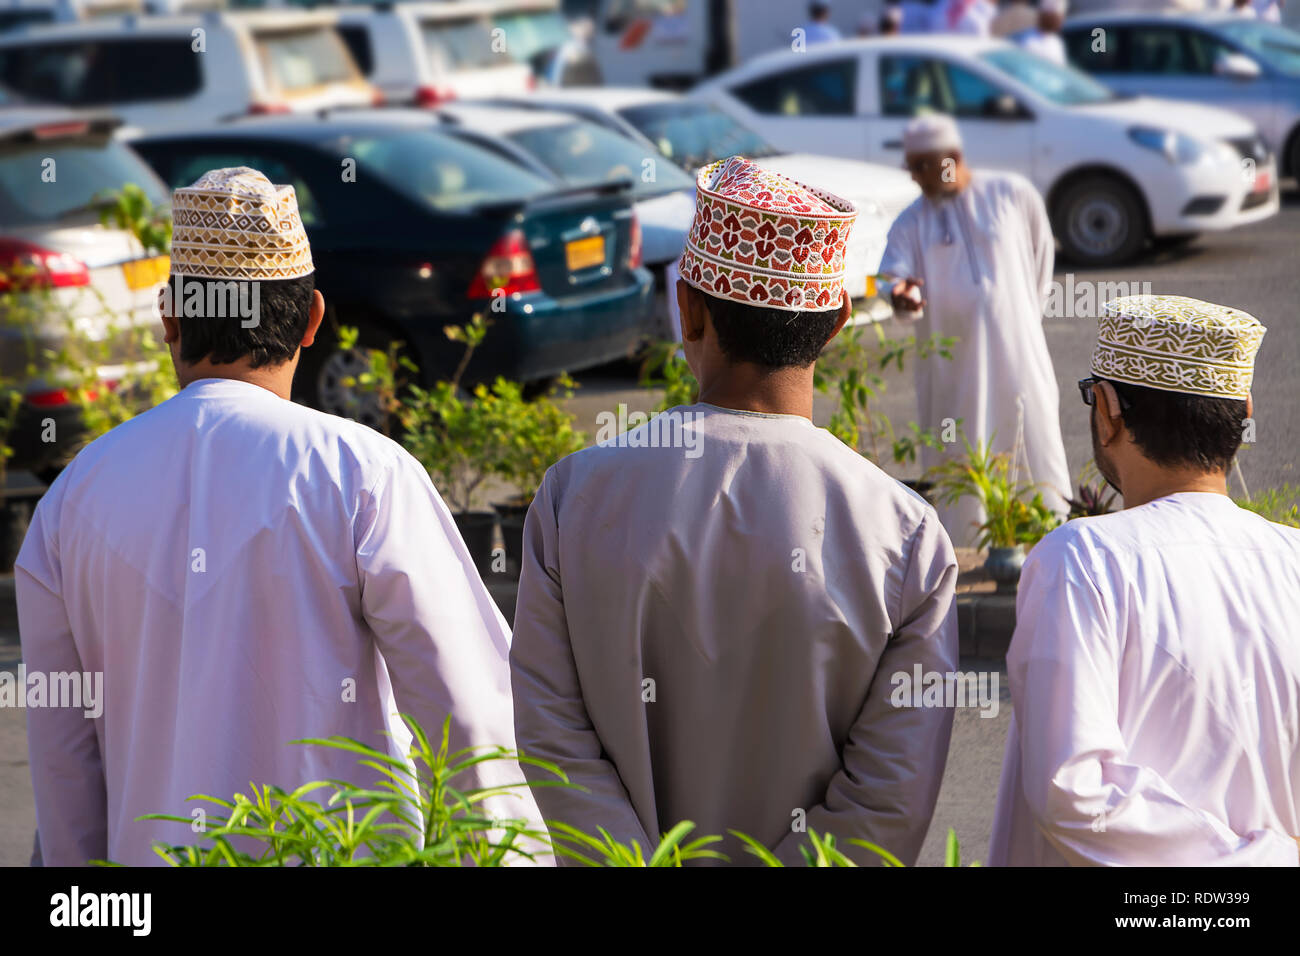 Omani Men In Traditional Clothing Stock Photos & Omani Men In